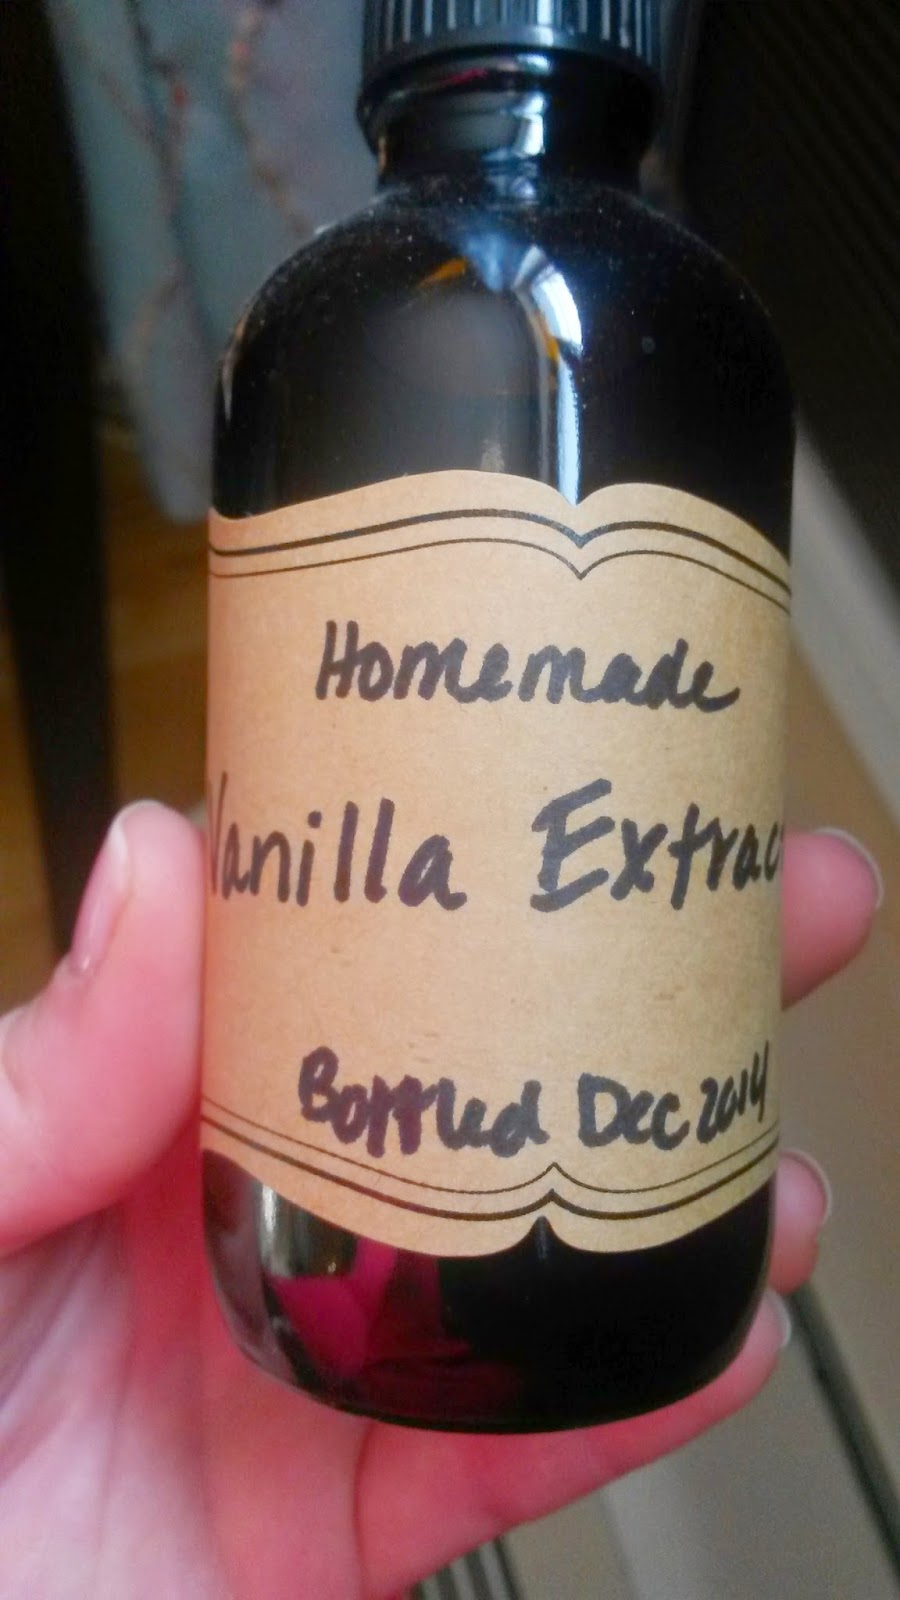 Delightful Homemade Vanilla Extract